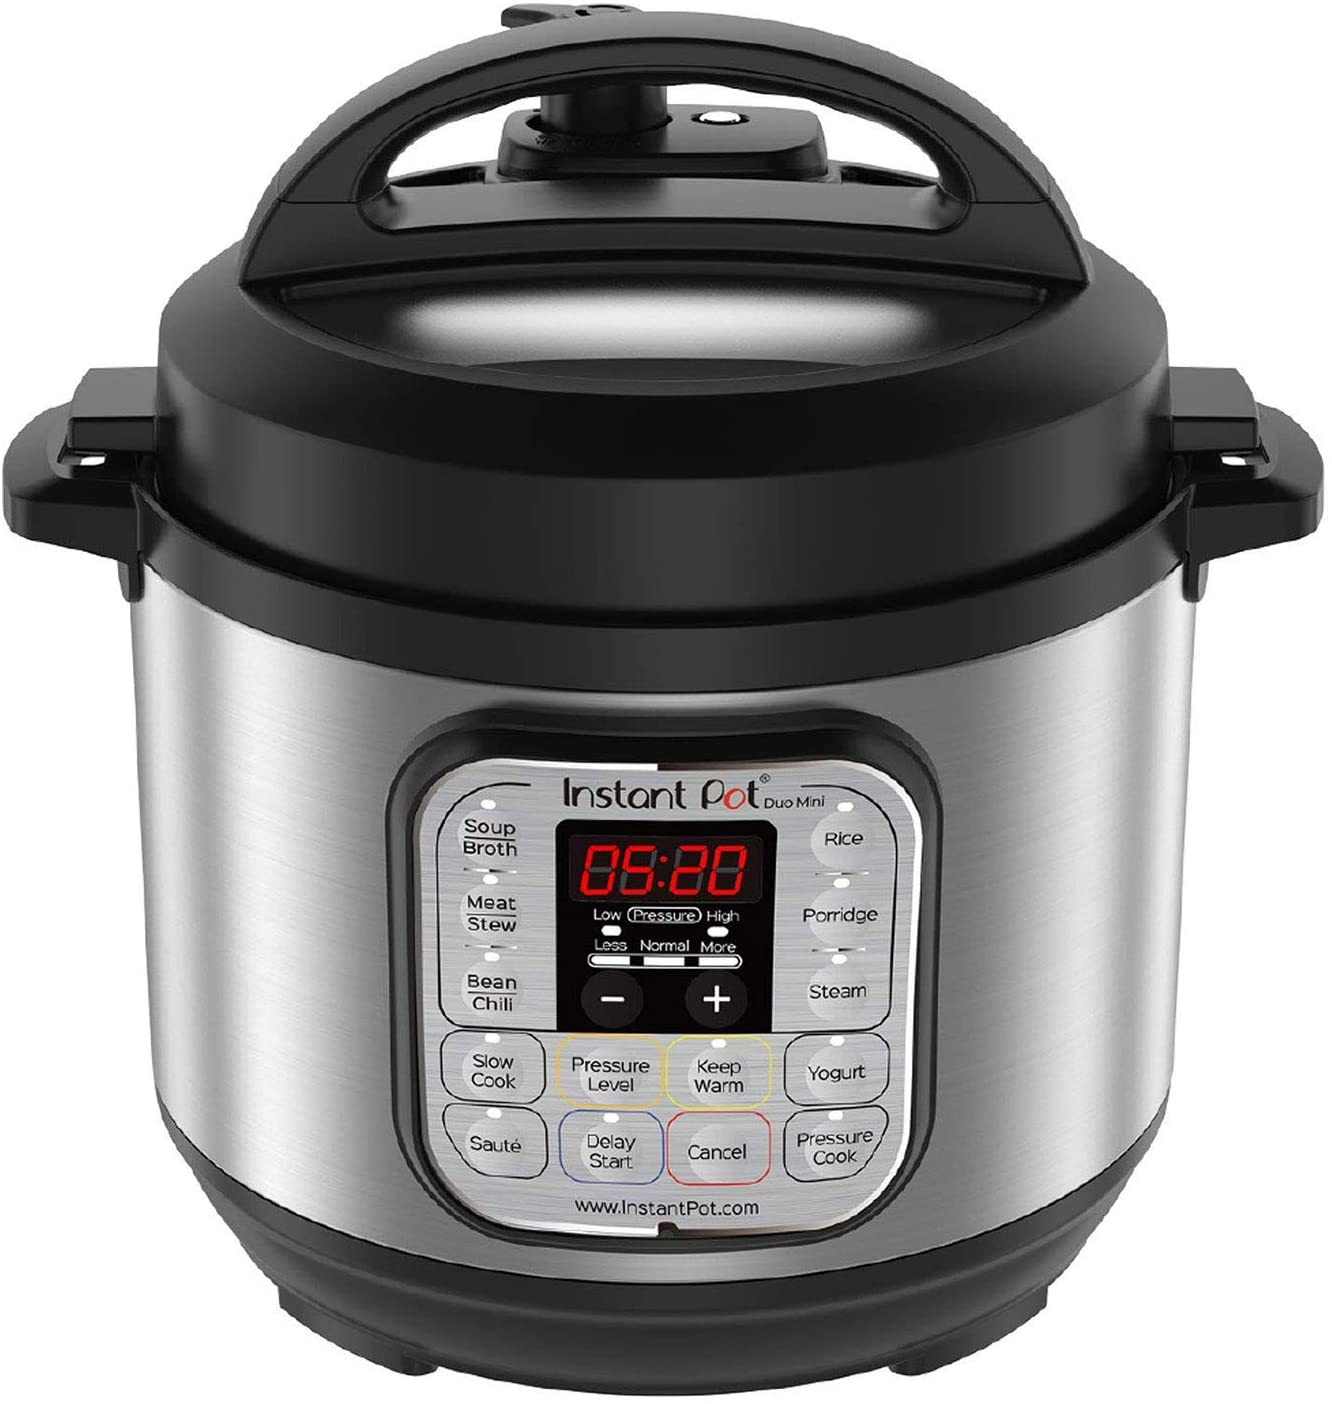 Instant Pot Duo Mini 7-in-1 Electric Pressure Cooker